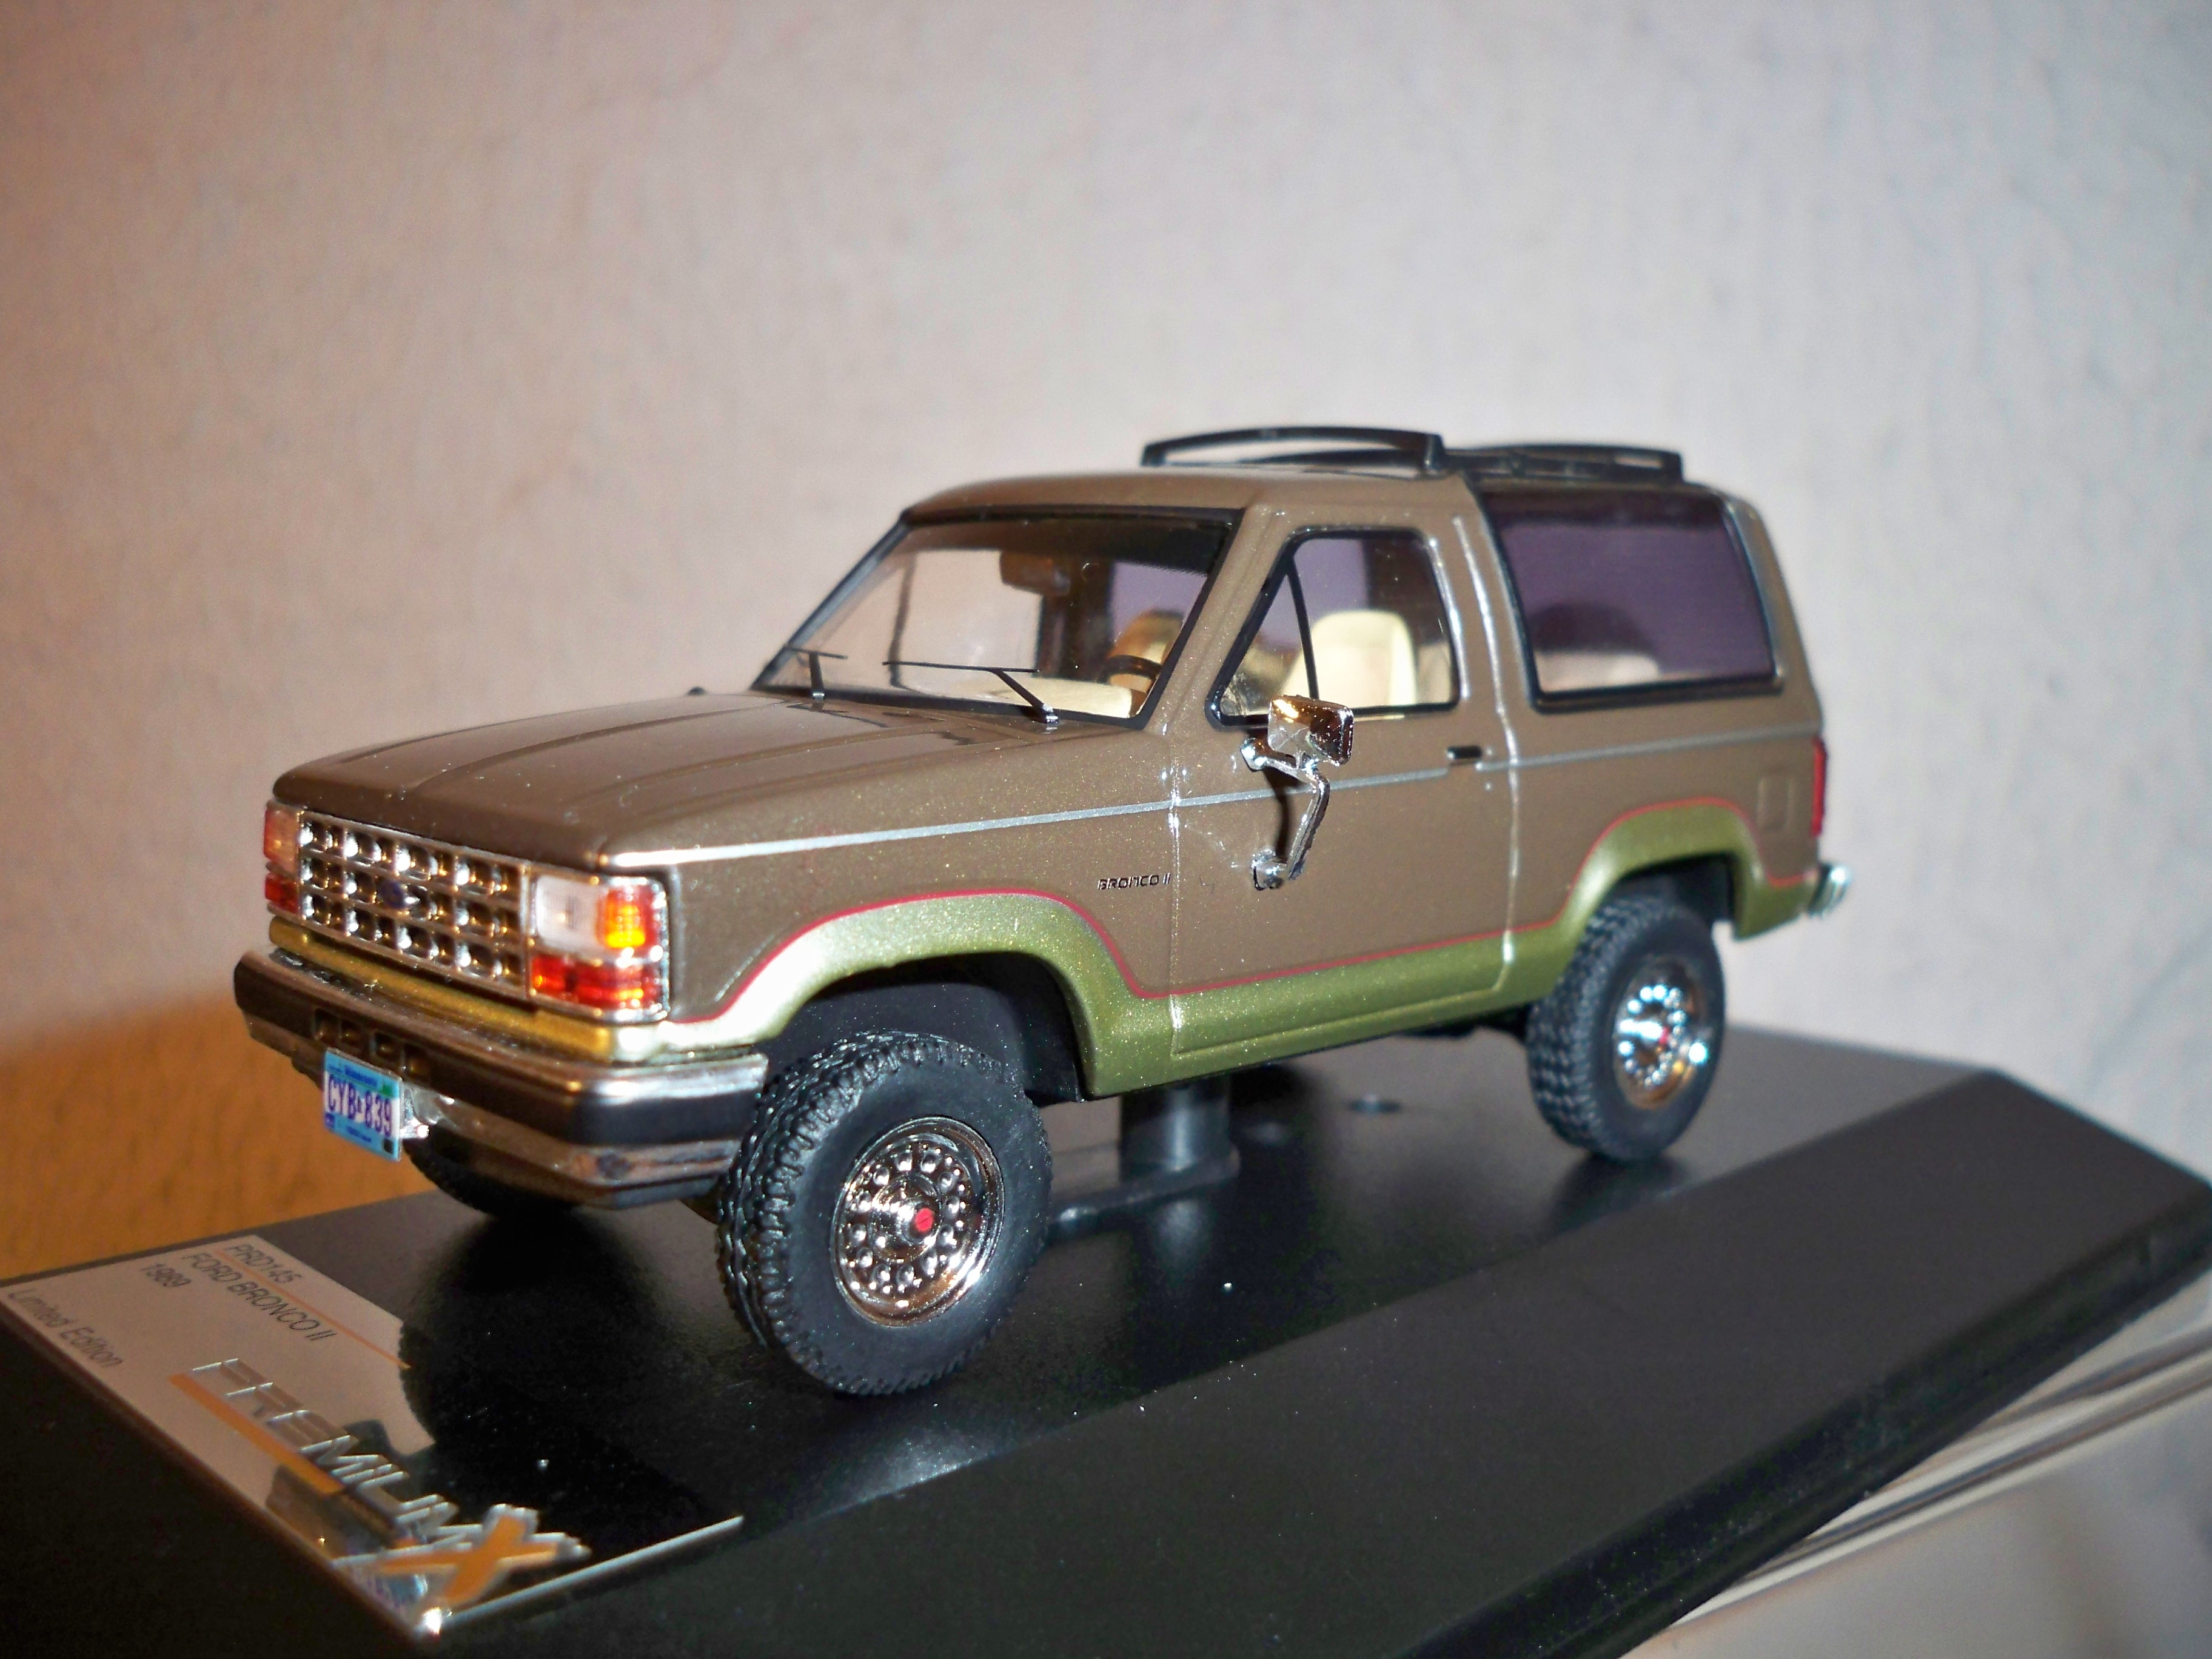 1989 Ford Bronco Ii Model Cars Hobbydb